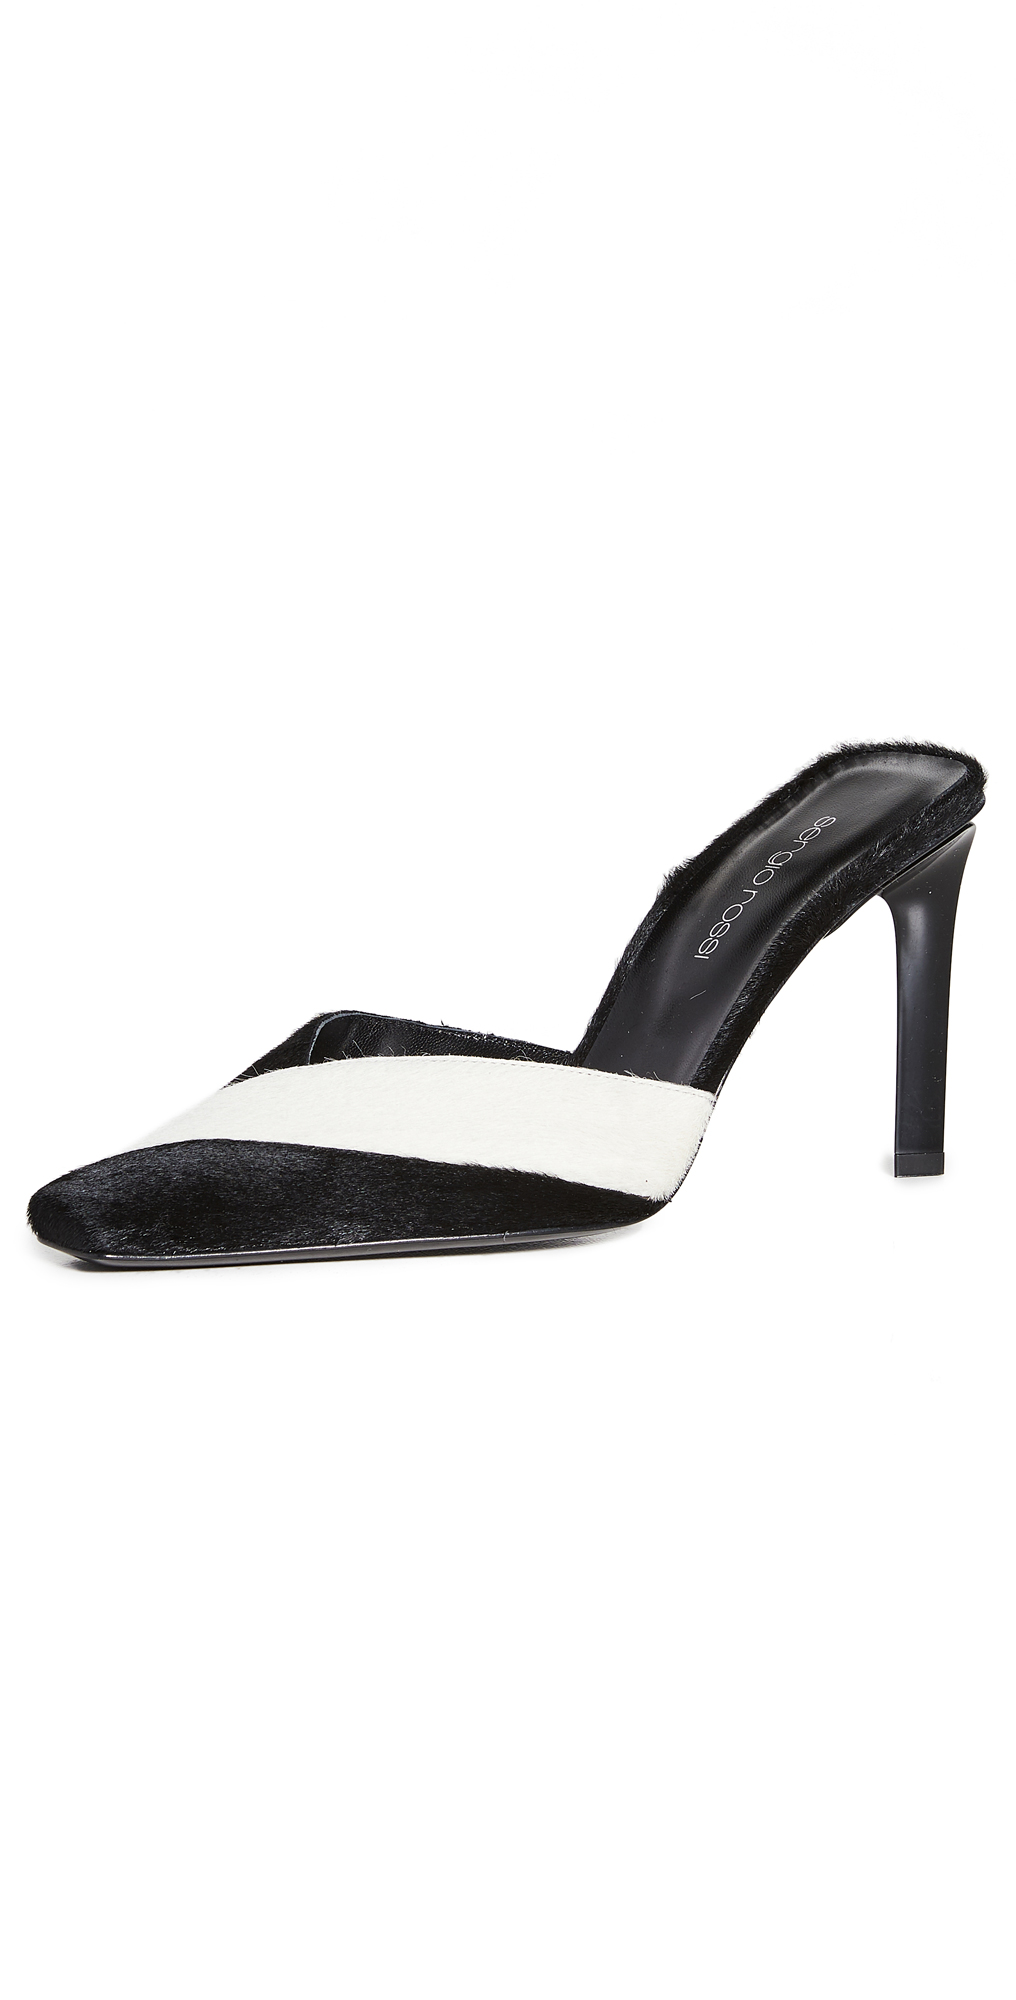 Sergio Rossi Colorblock Mule Pumps